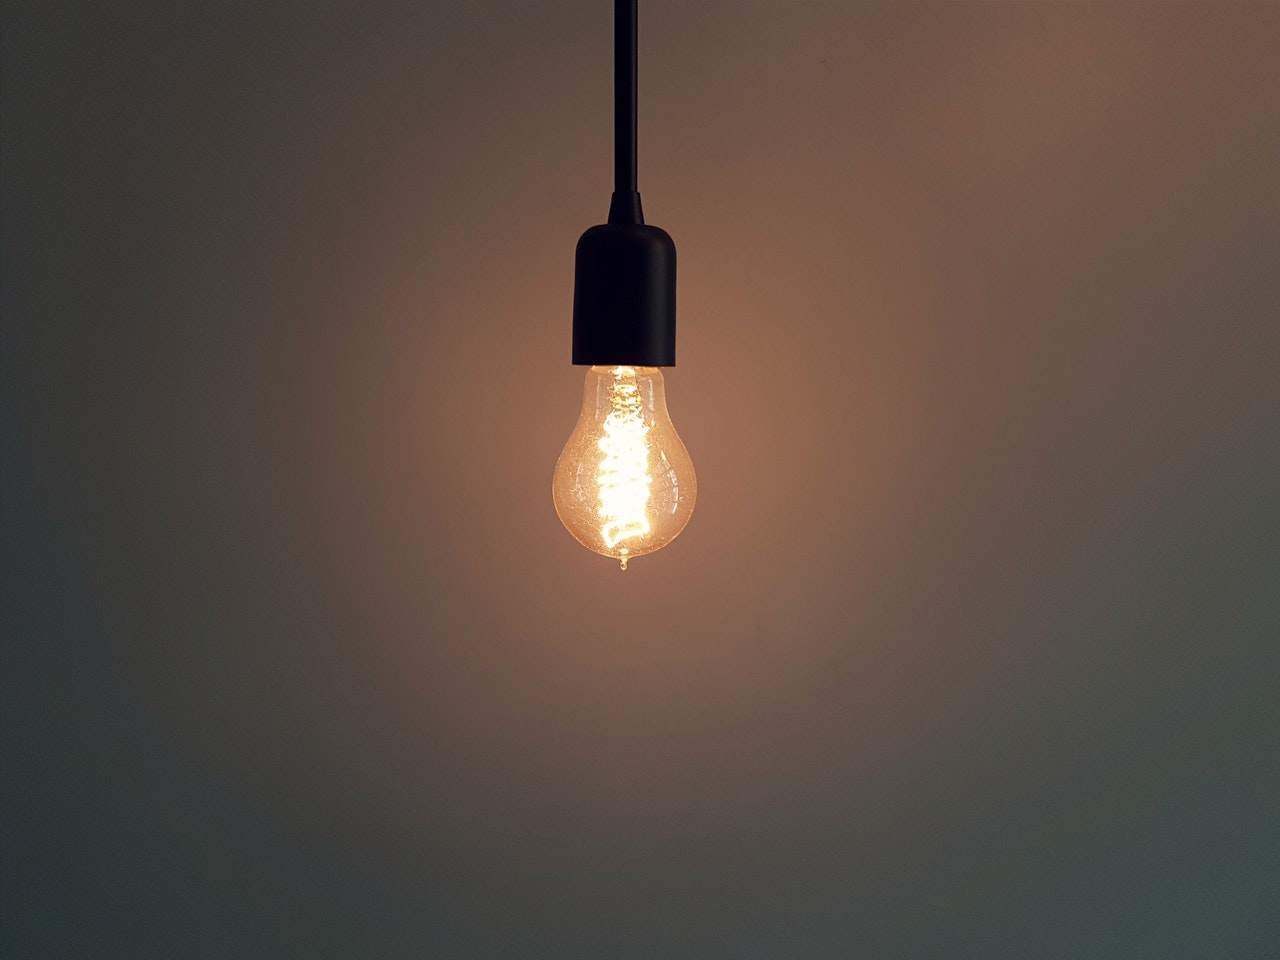 Lighted bulb reflecting as disruptive innovation